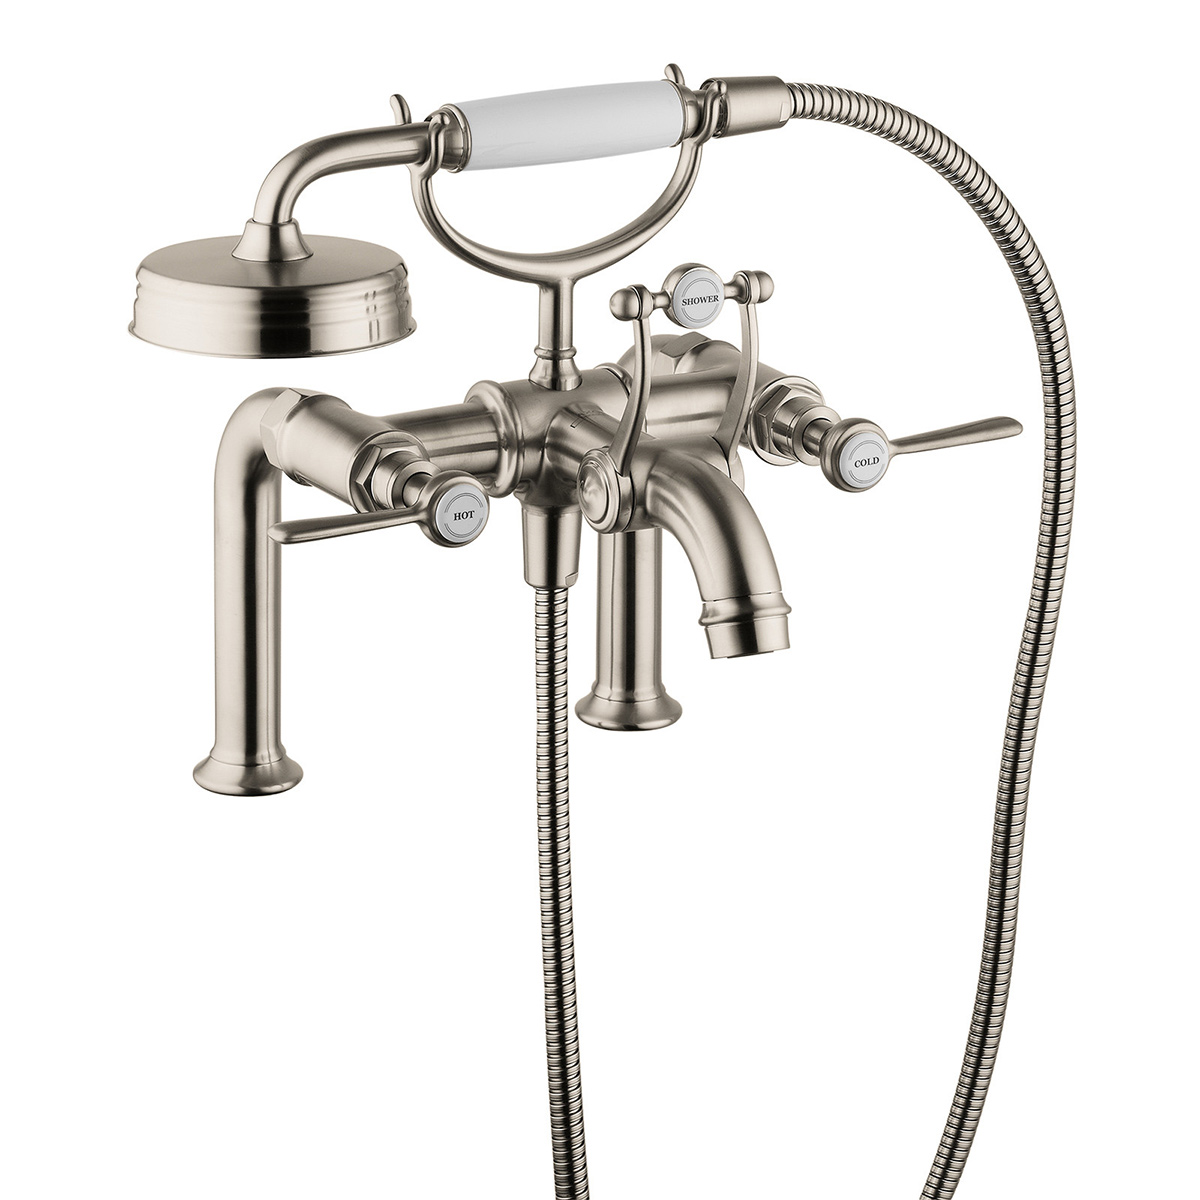 deck mount tub faucet with diverter. Hansgrohe 16552821 Brushed Nickel Axor Montreux Deck Mounted Roman Tub  Faucet Trim With Metal Lever Handles And Built In Diverter Bath4All